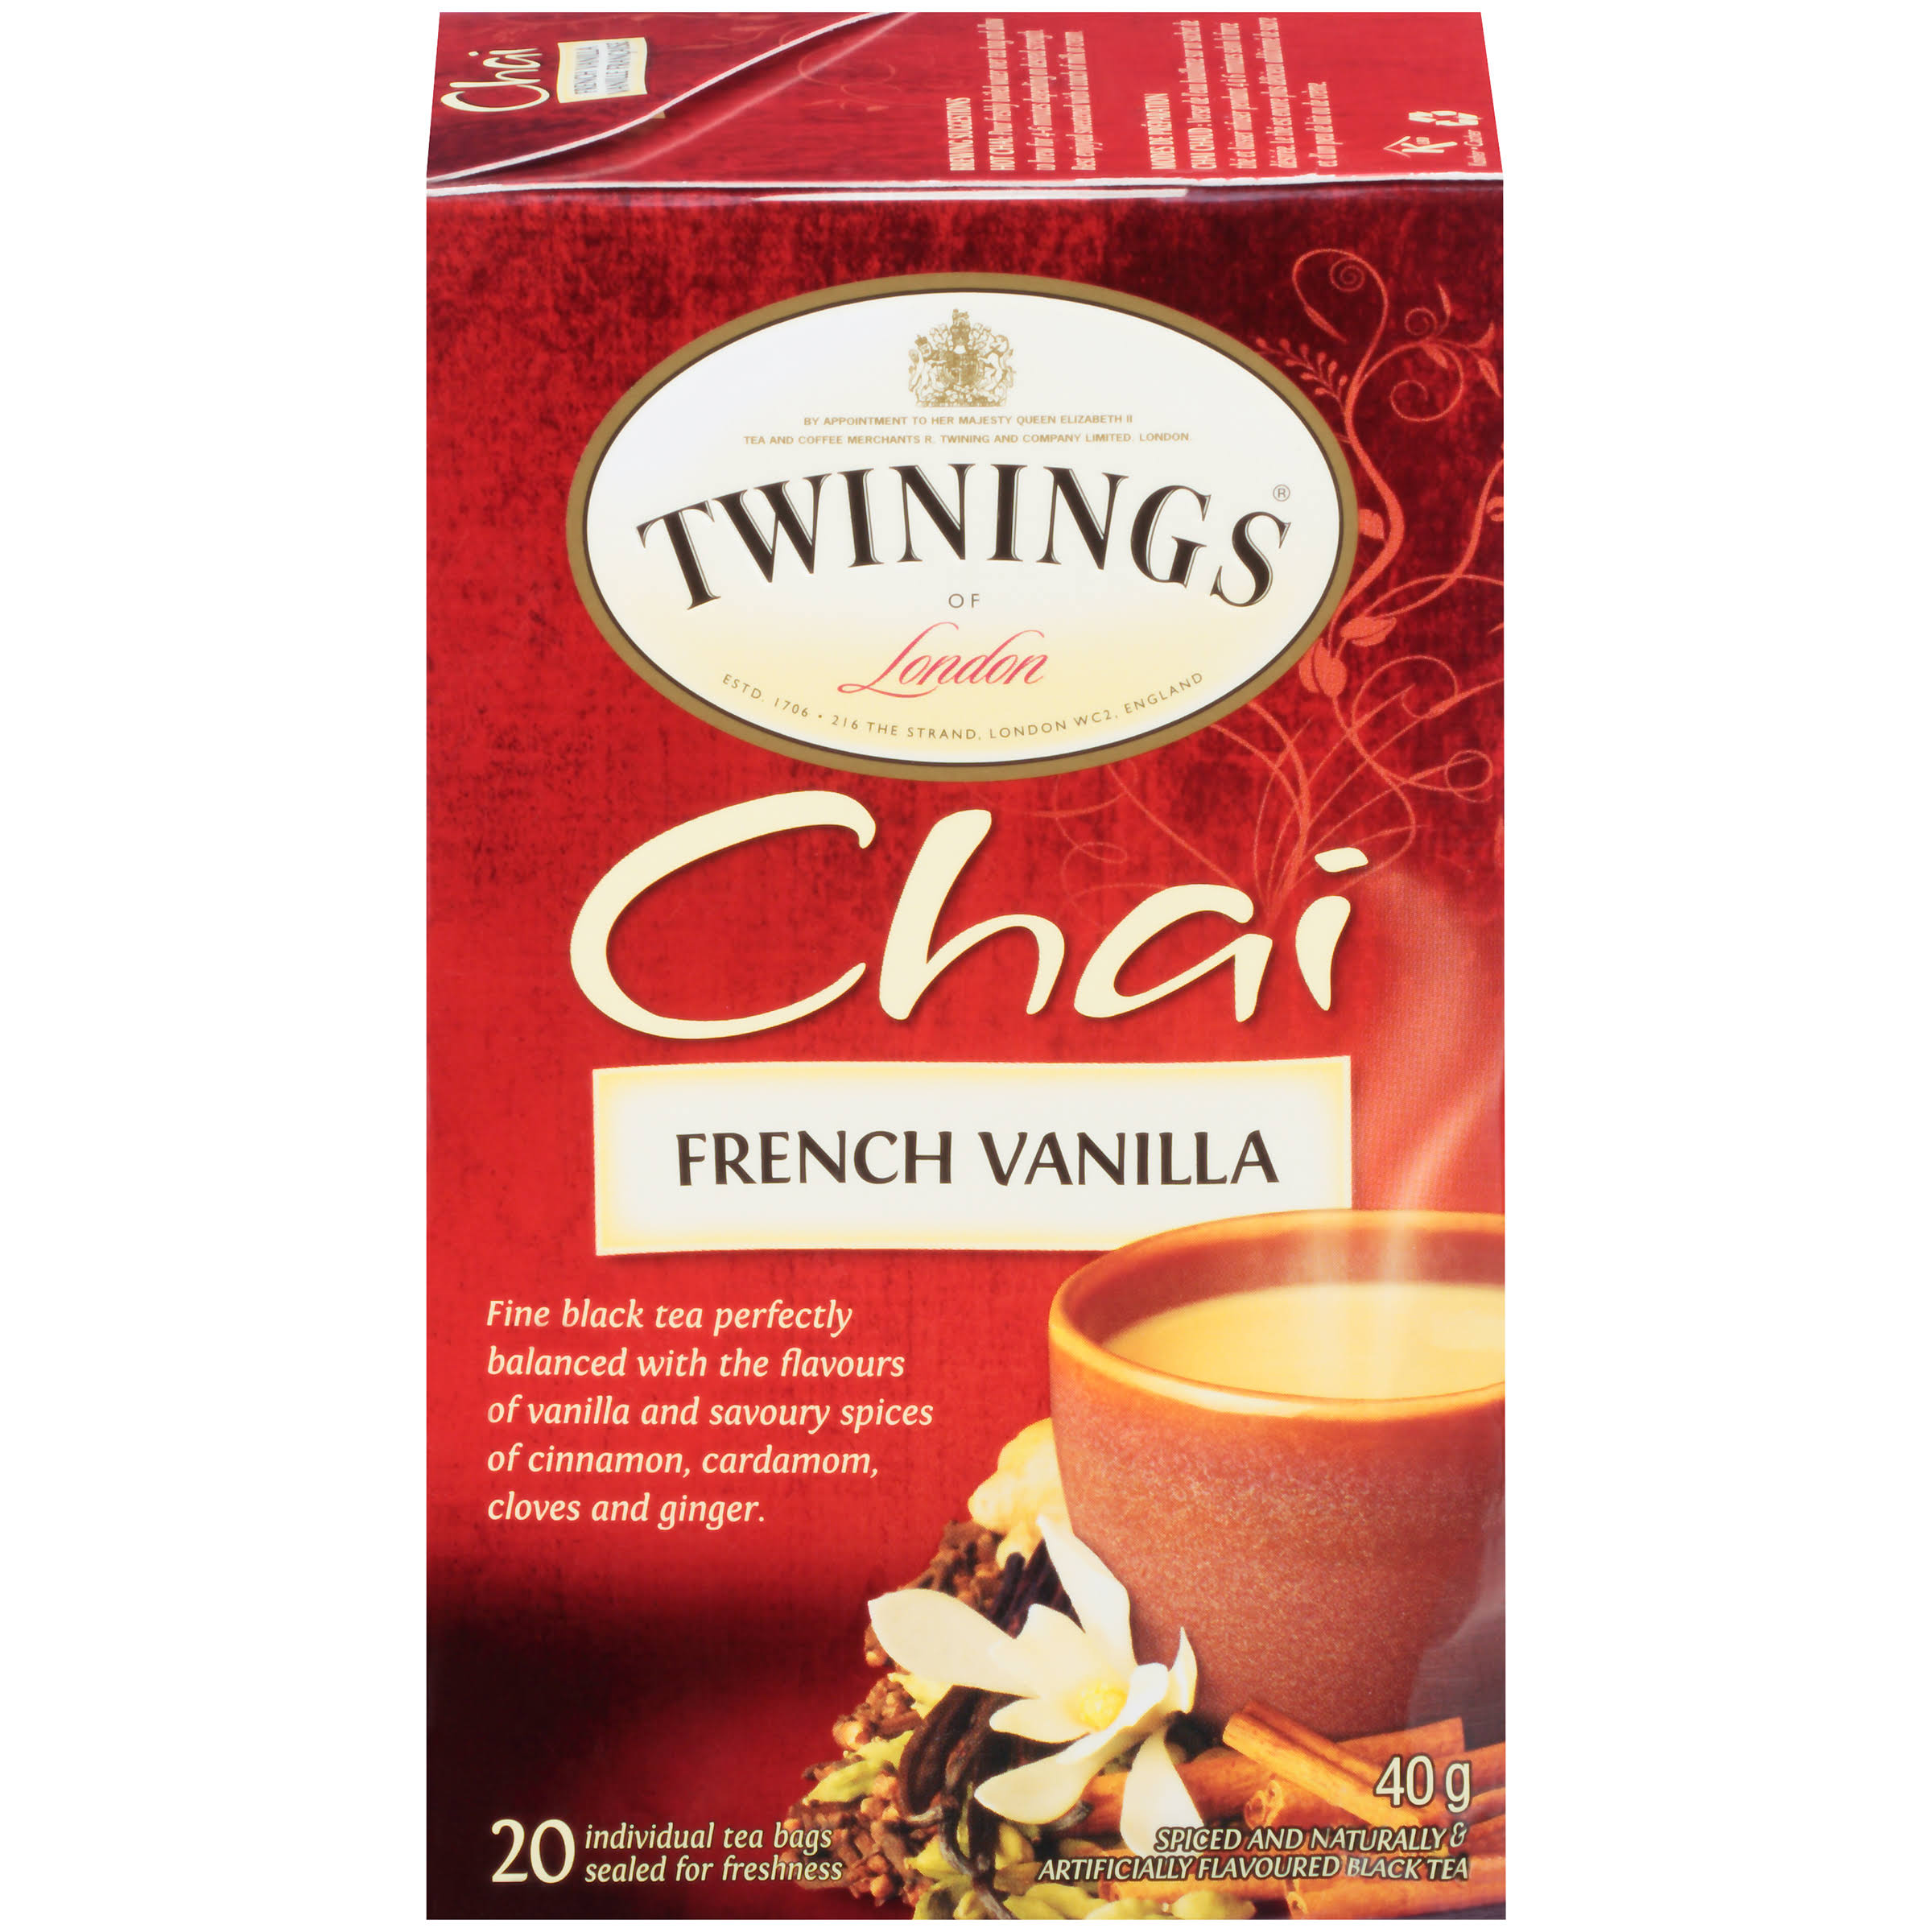 Twinings of London French Vanilla Chai 20 Ct Tea Bags 40g Box